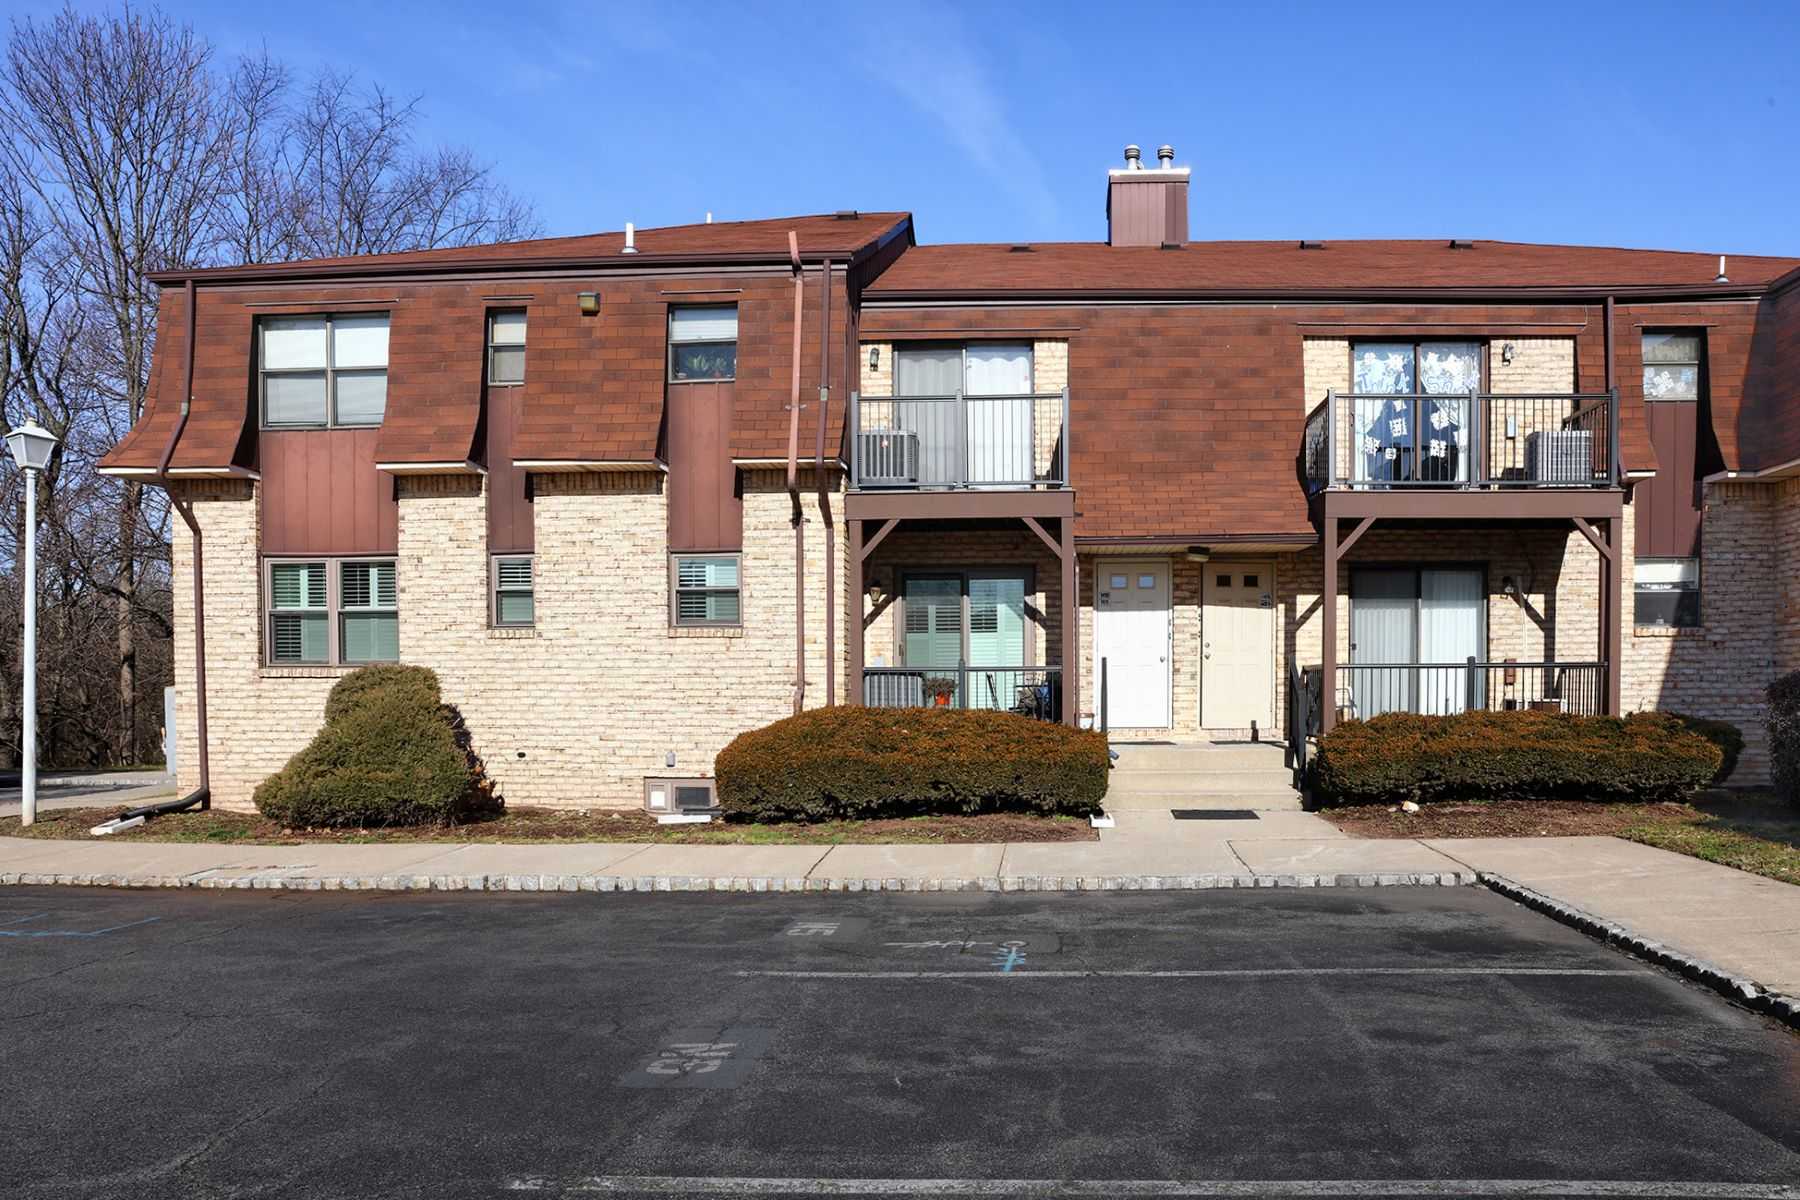 Condominium for Sale at First-Floor Unit With A Basement! 1409 Normandy Court, Flemington, New Jersey 08822 United States